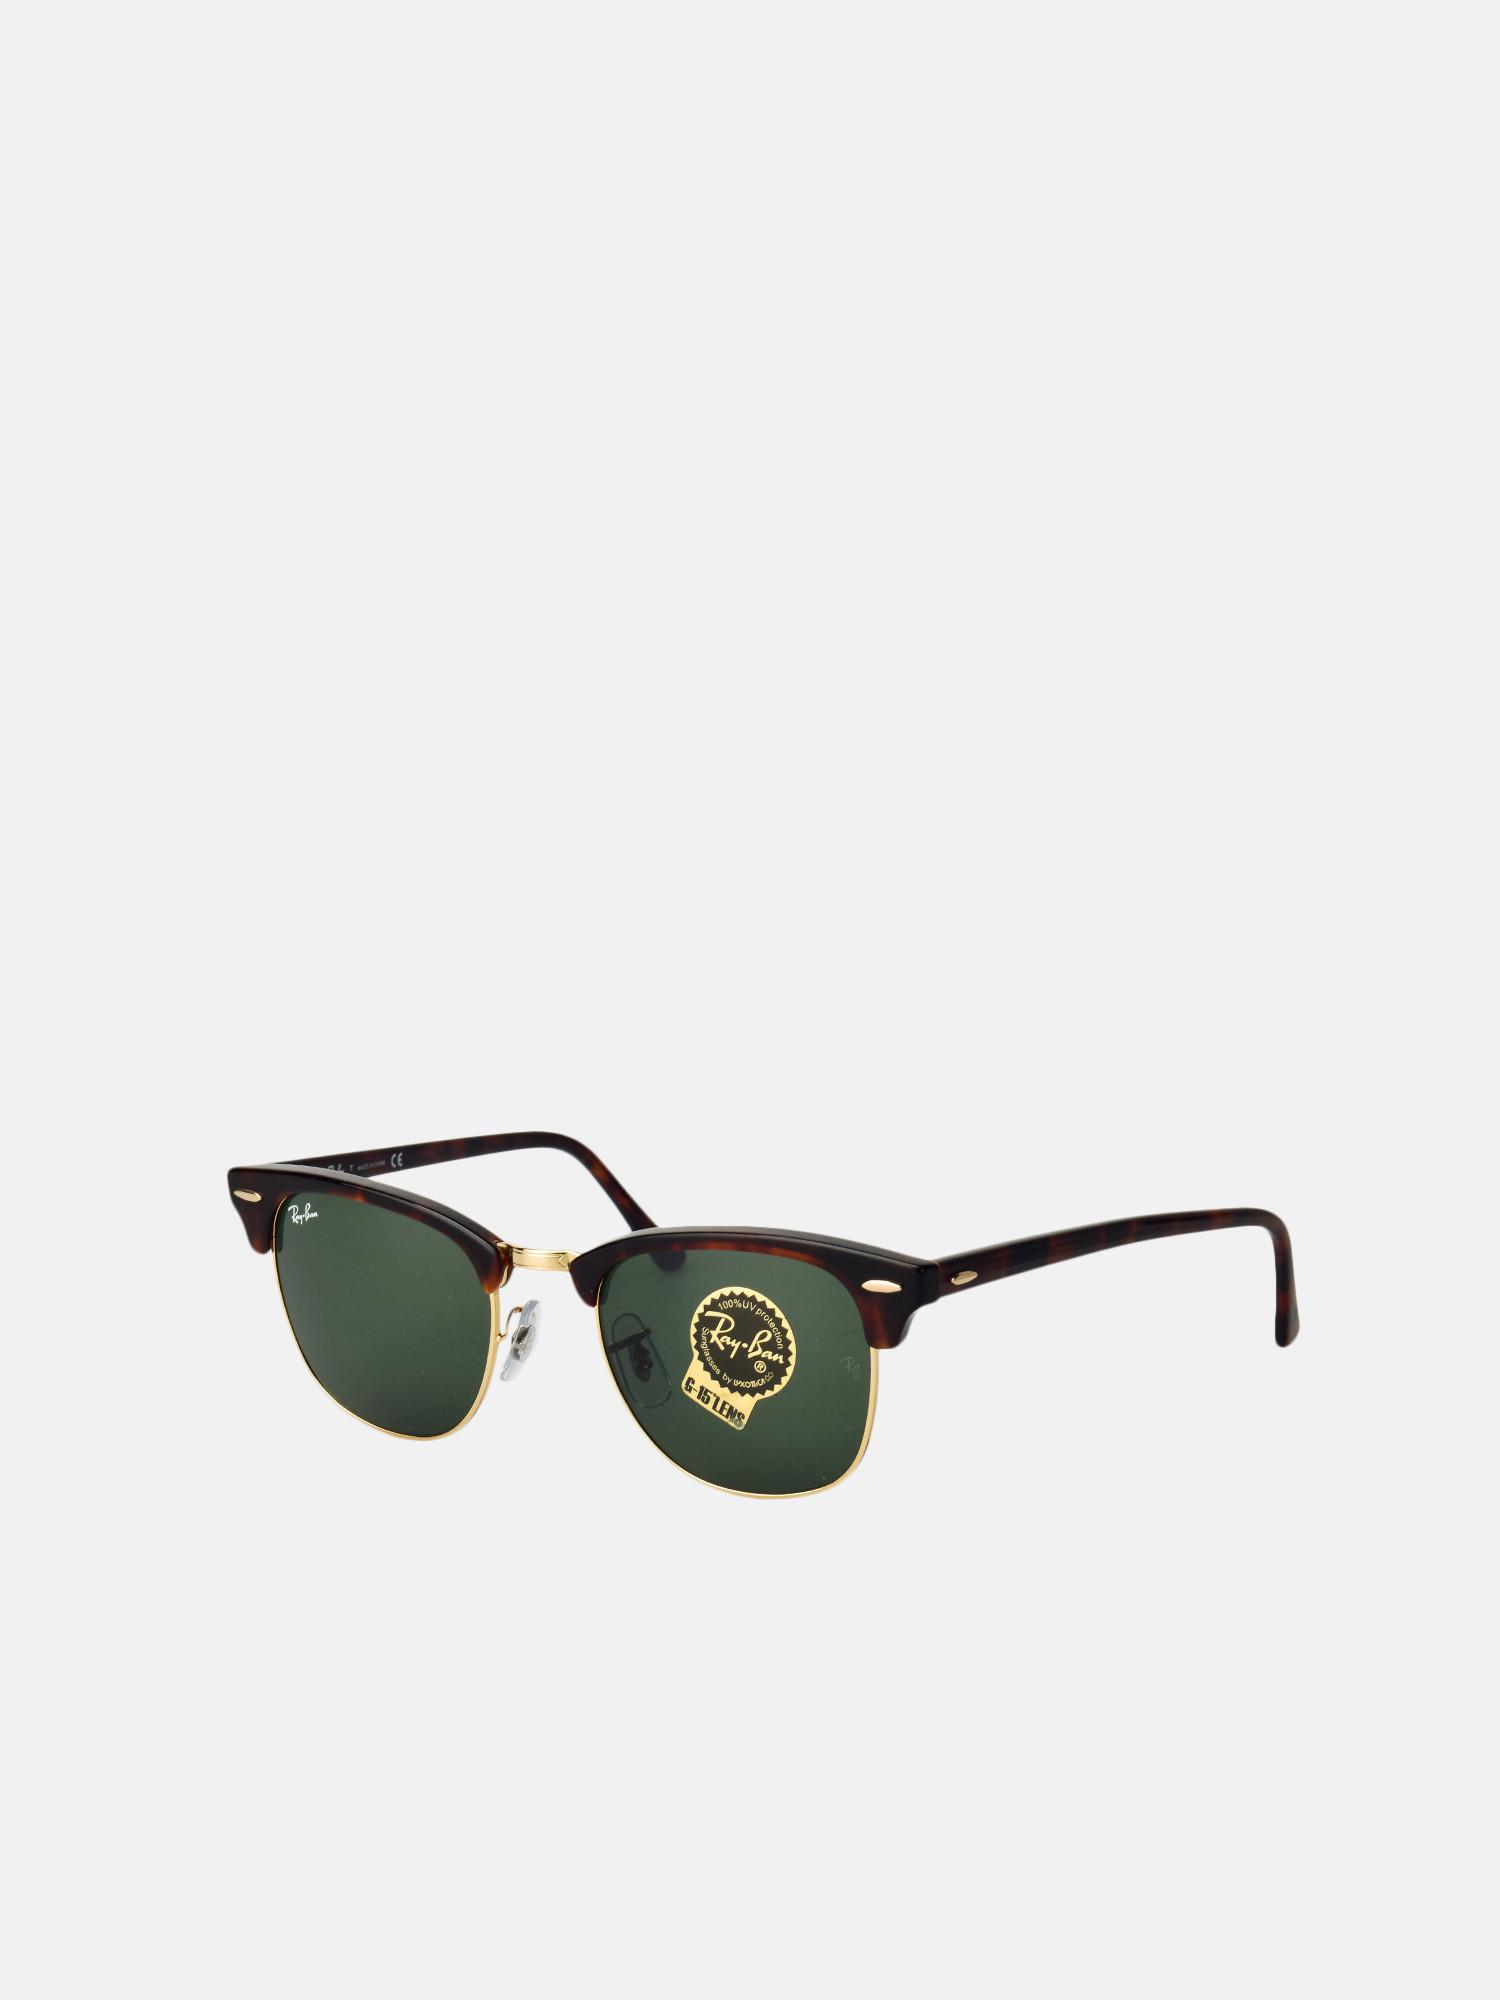 Lyst - Ray-Ban Rb 3016 W0366 Mock Tortoise/arista 51 Size in Green